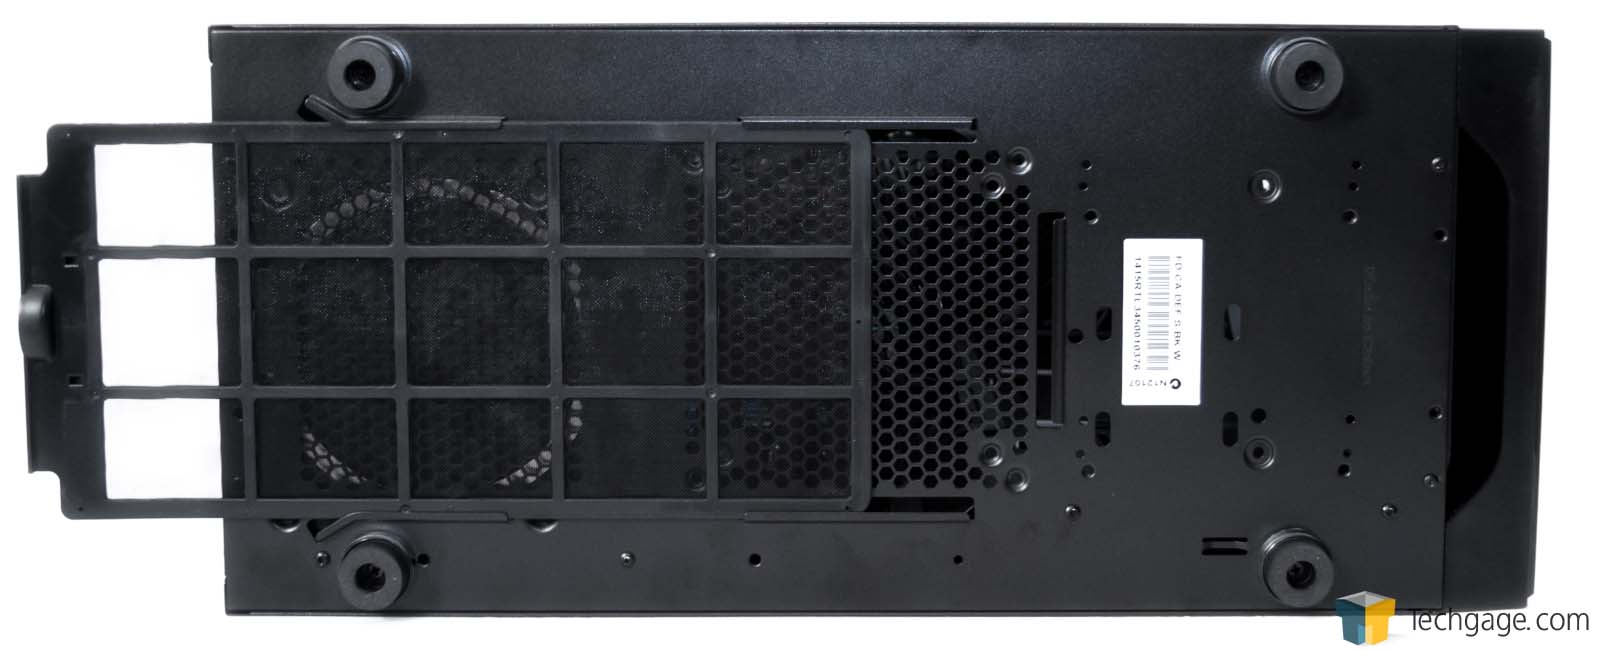 The Pc Chassis Evolved A Review Of The Fractal Design